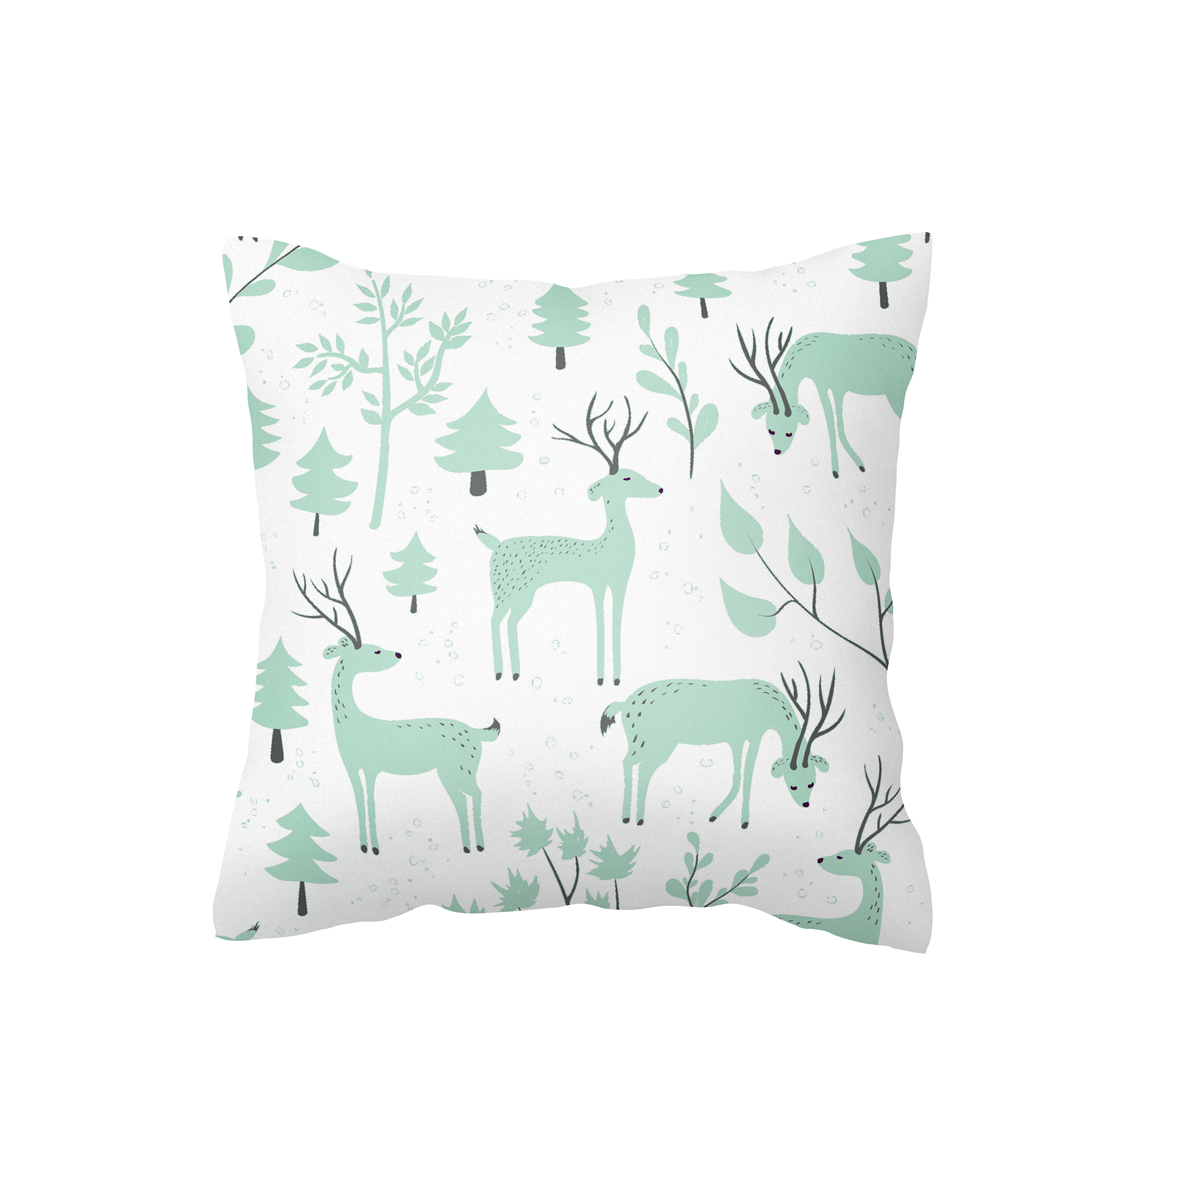 Mint Snowy Woodland Scatter Cushion